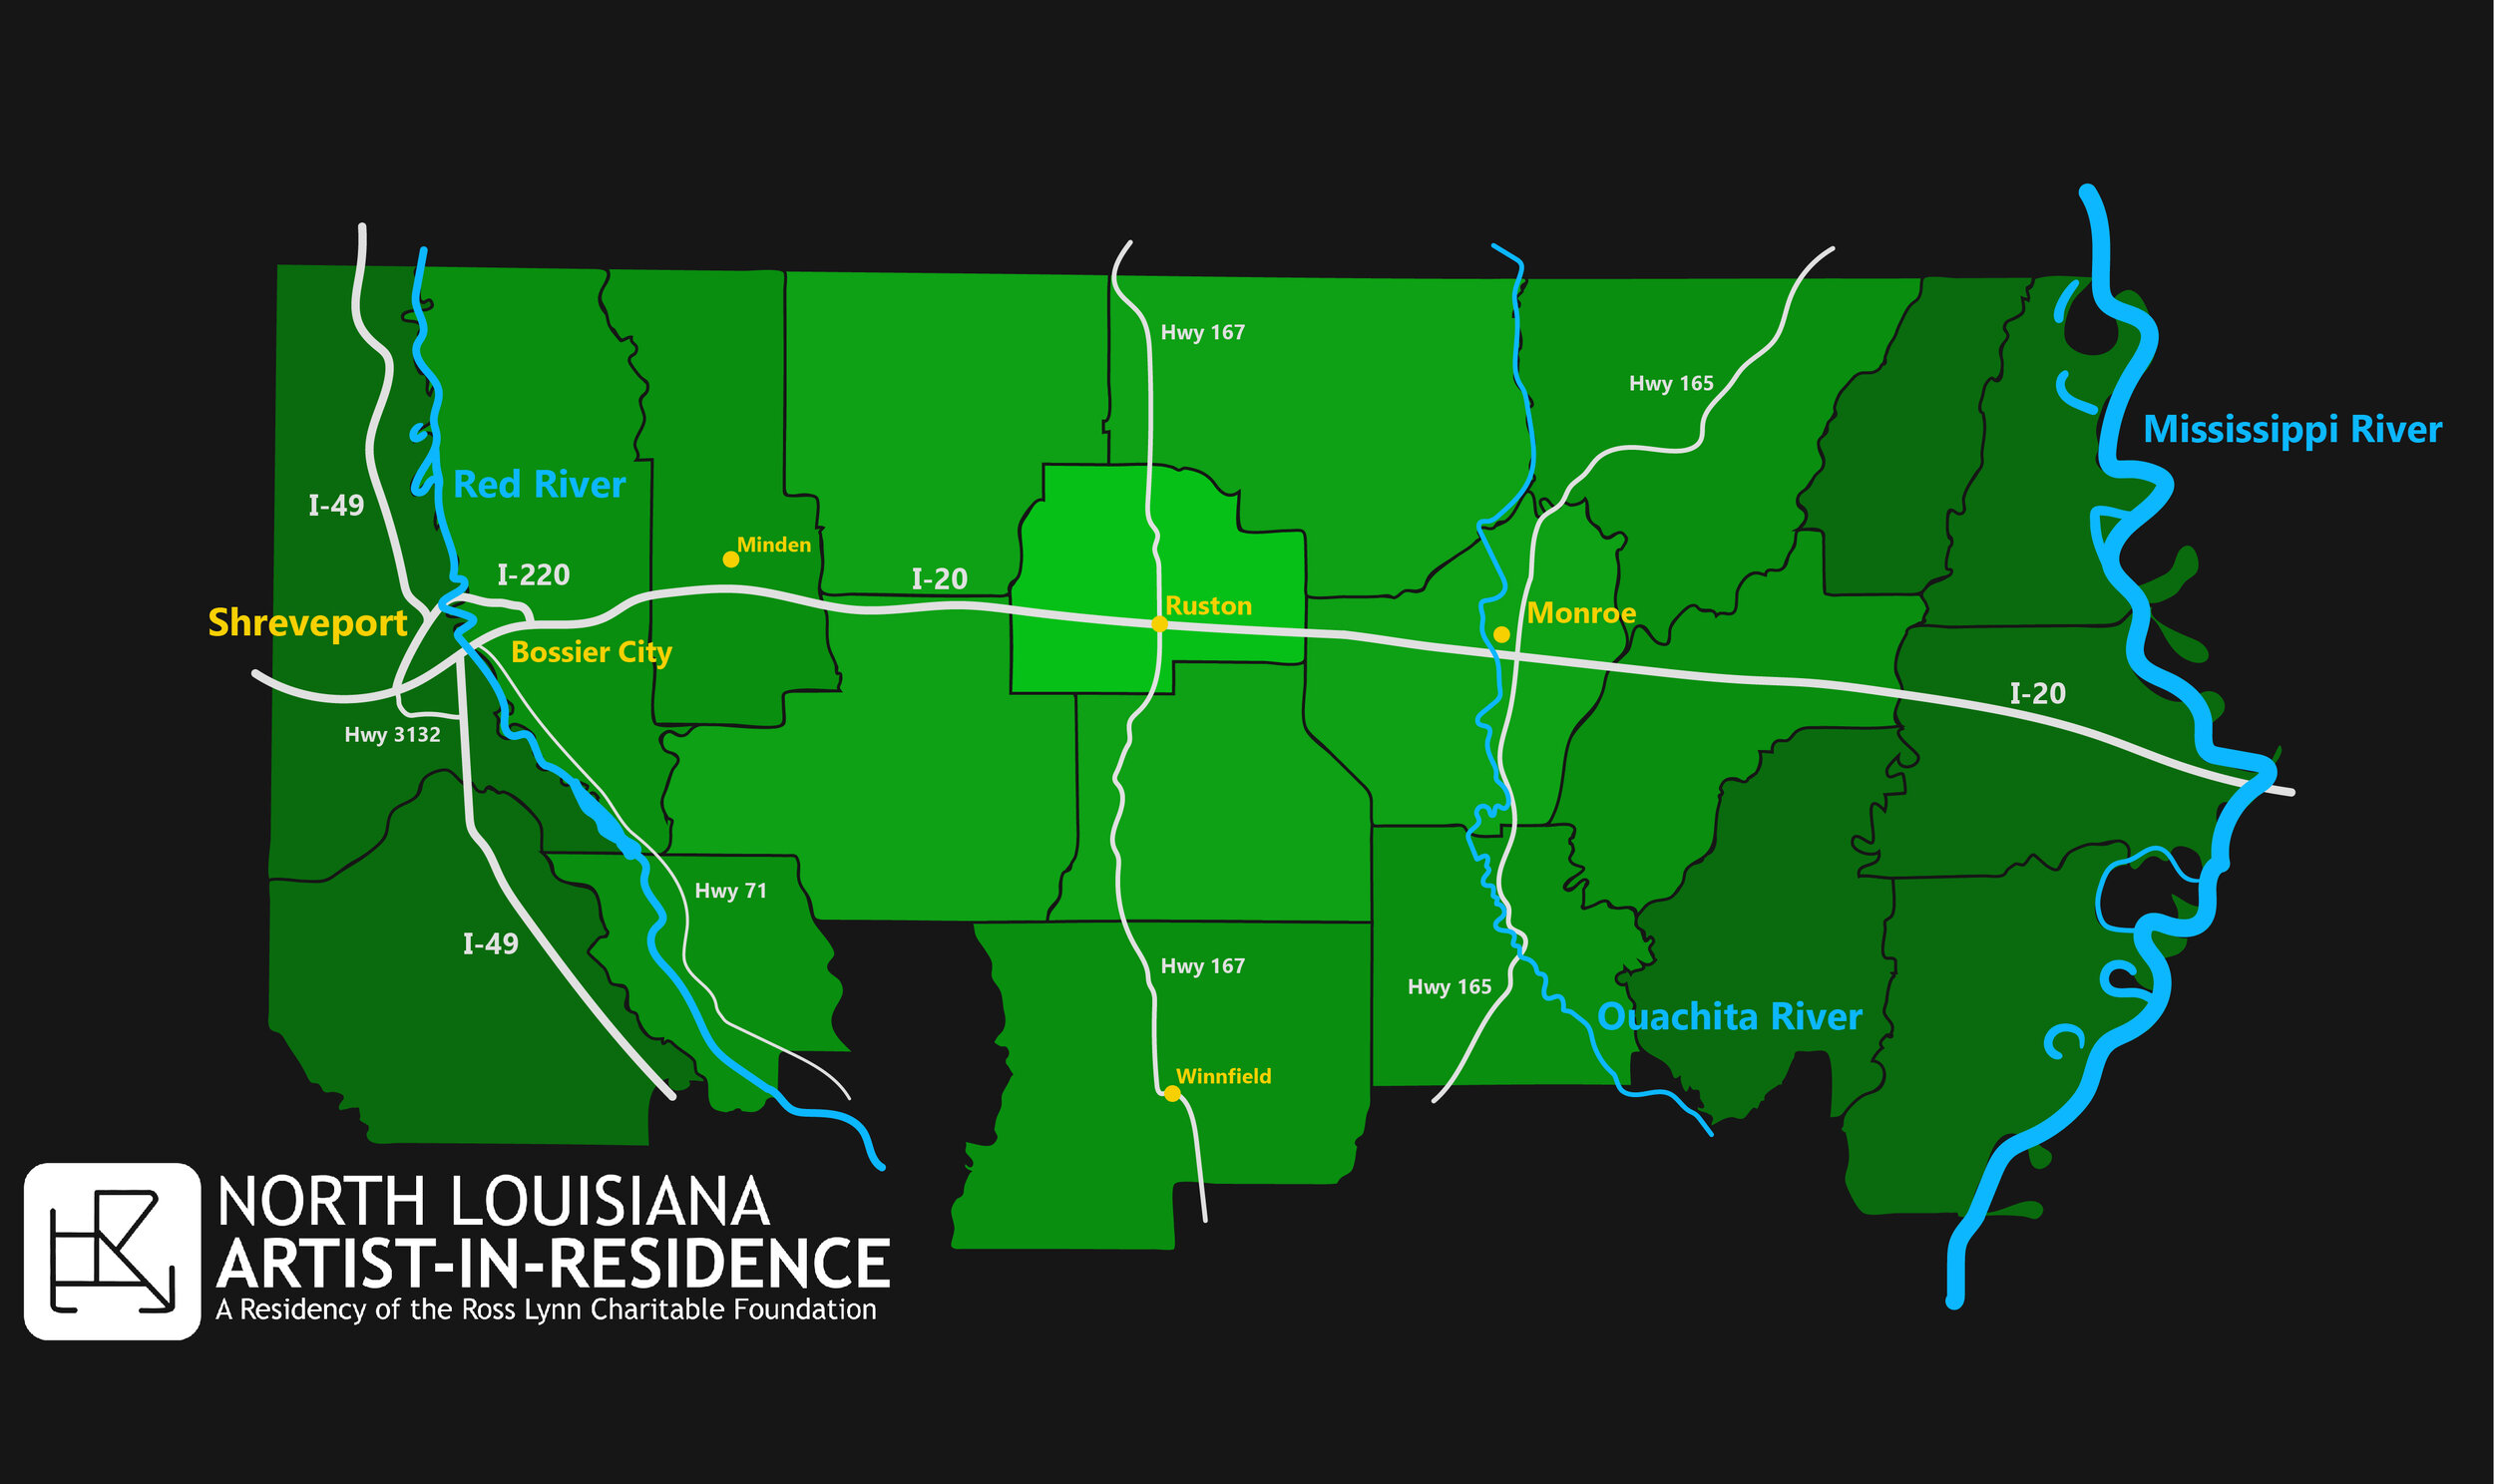 North Louisiana with major cities, highways, and rivers.